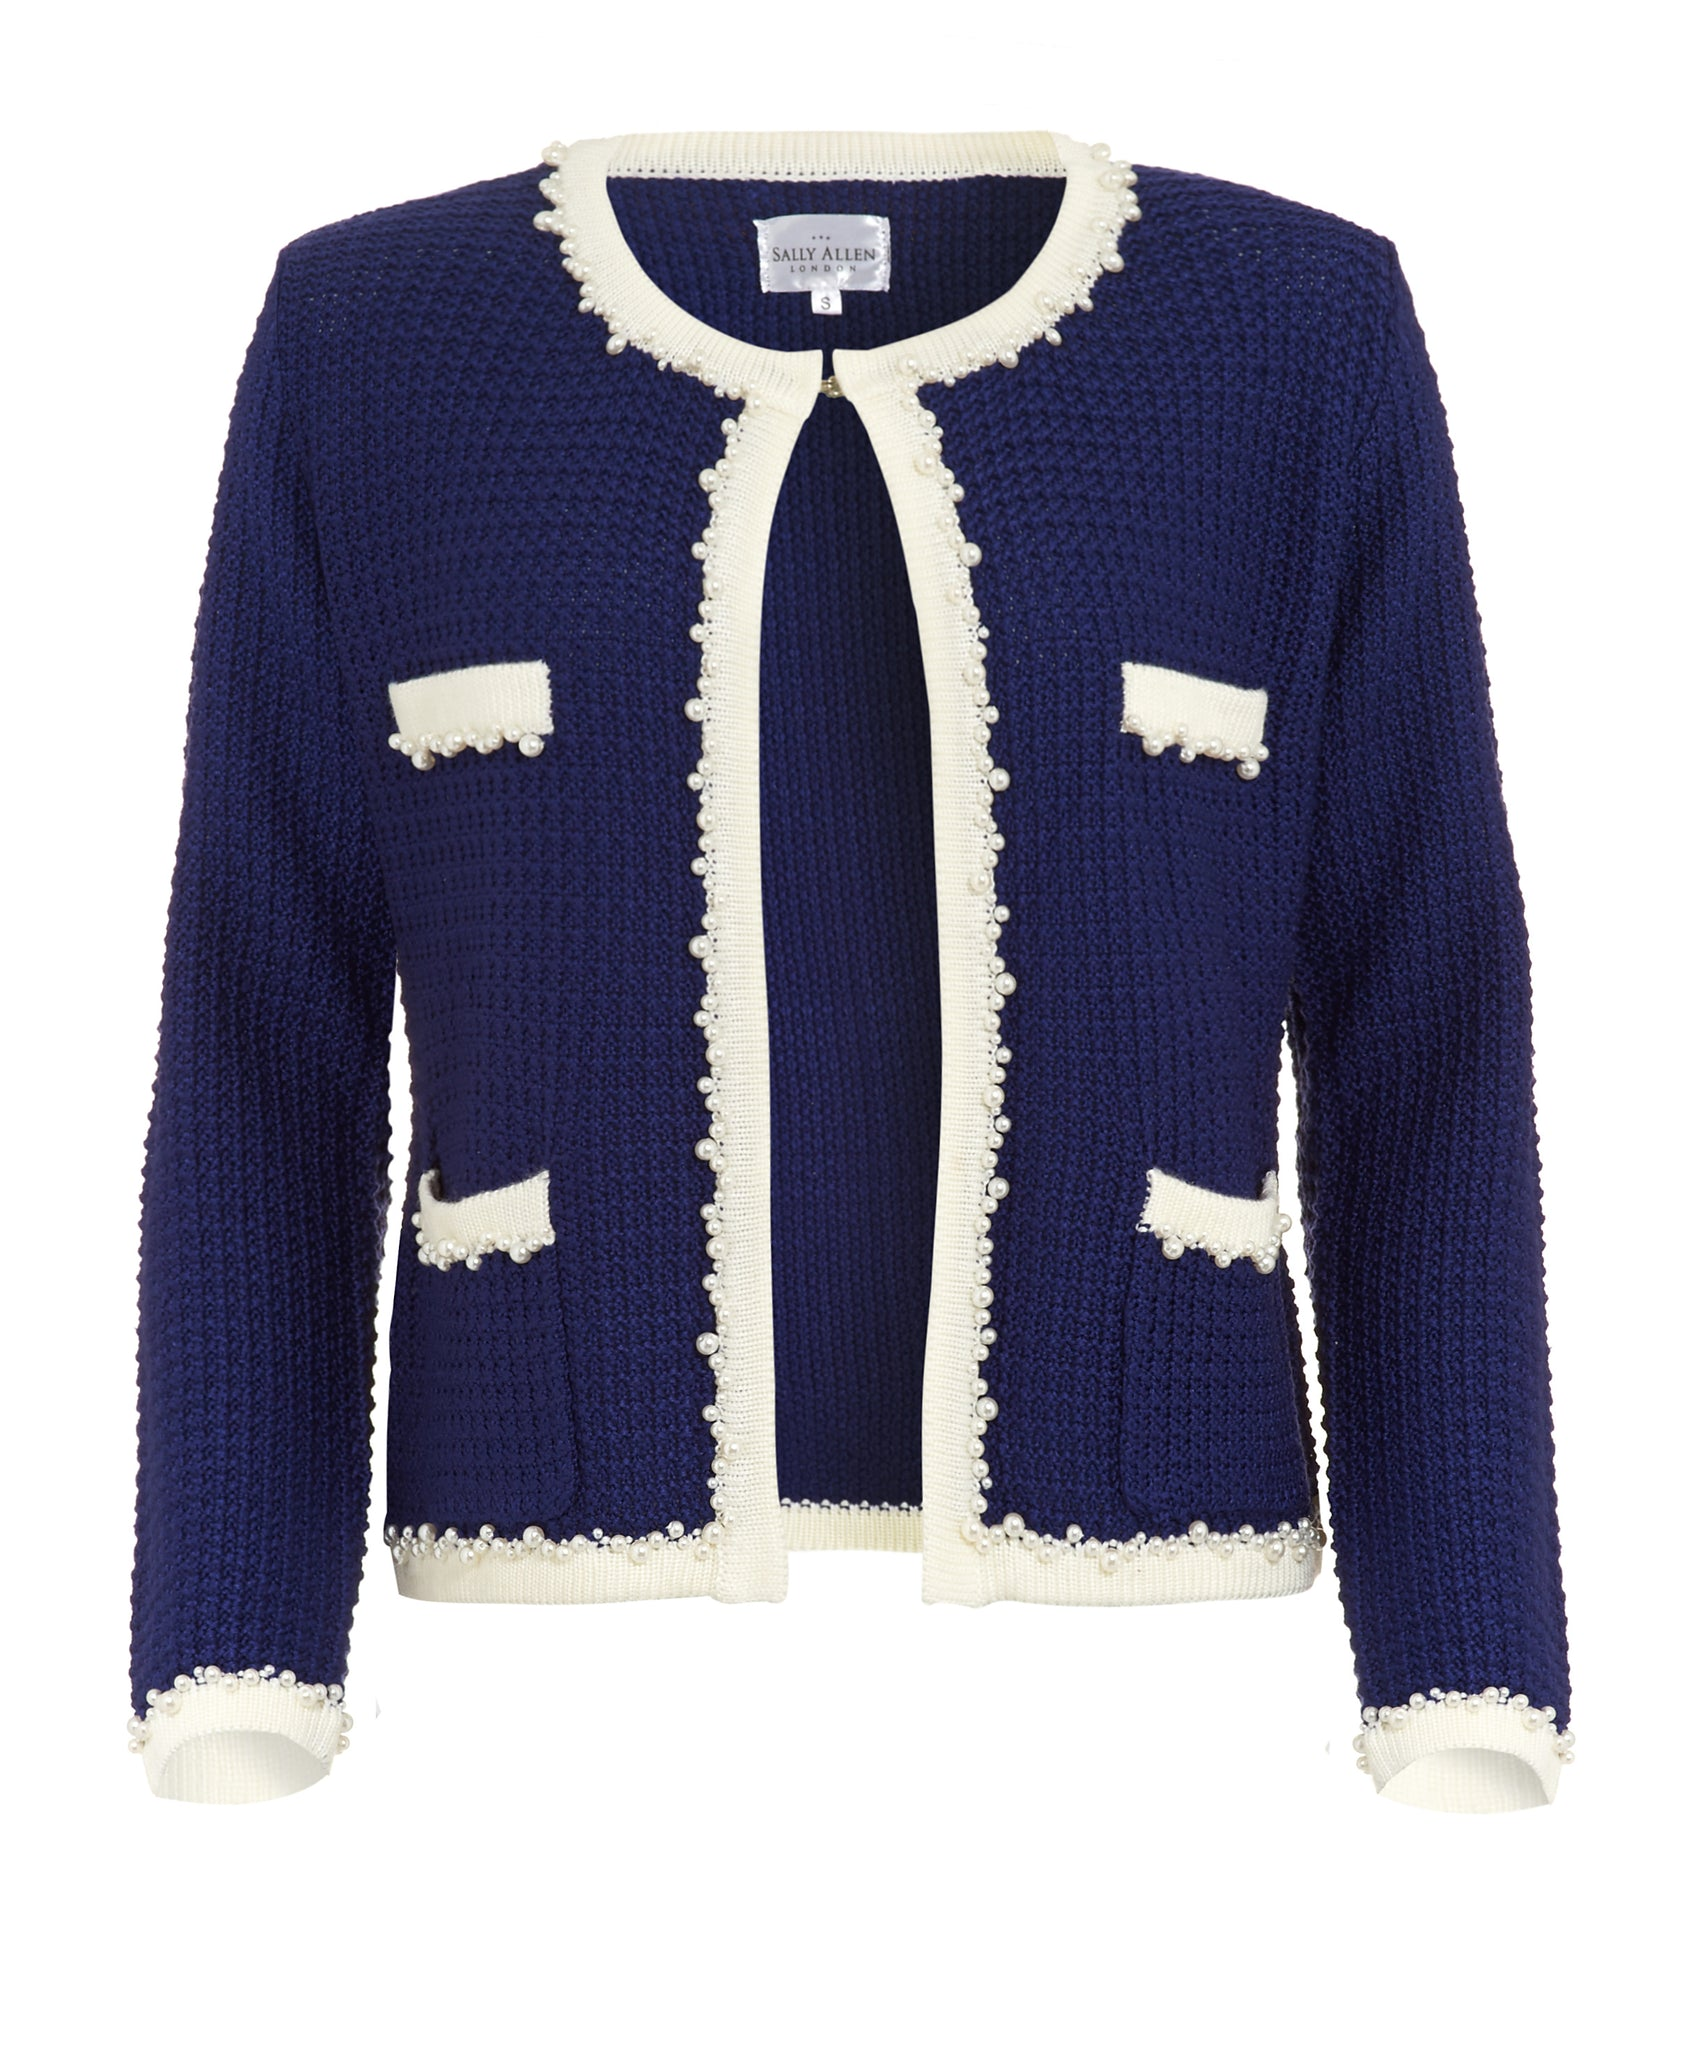 Royal Blue French-style knitted jacket - inspired by Coco Chanel with white edging and pearl trim - front